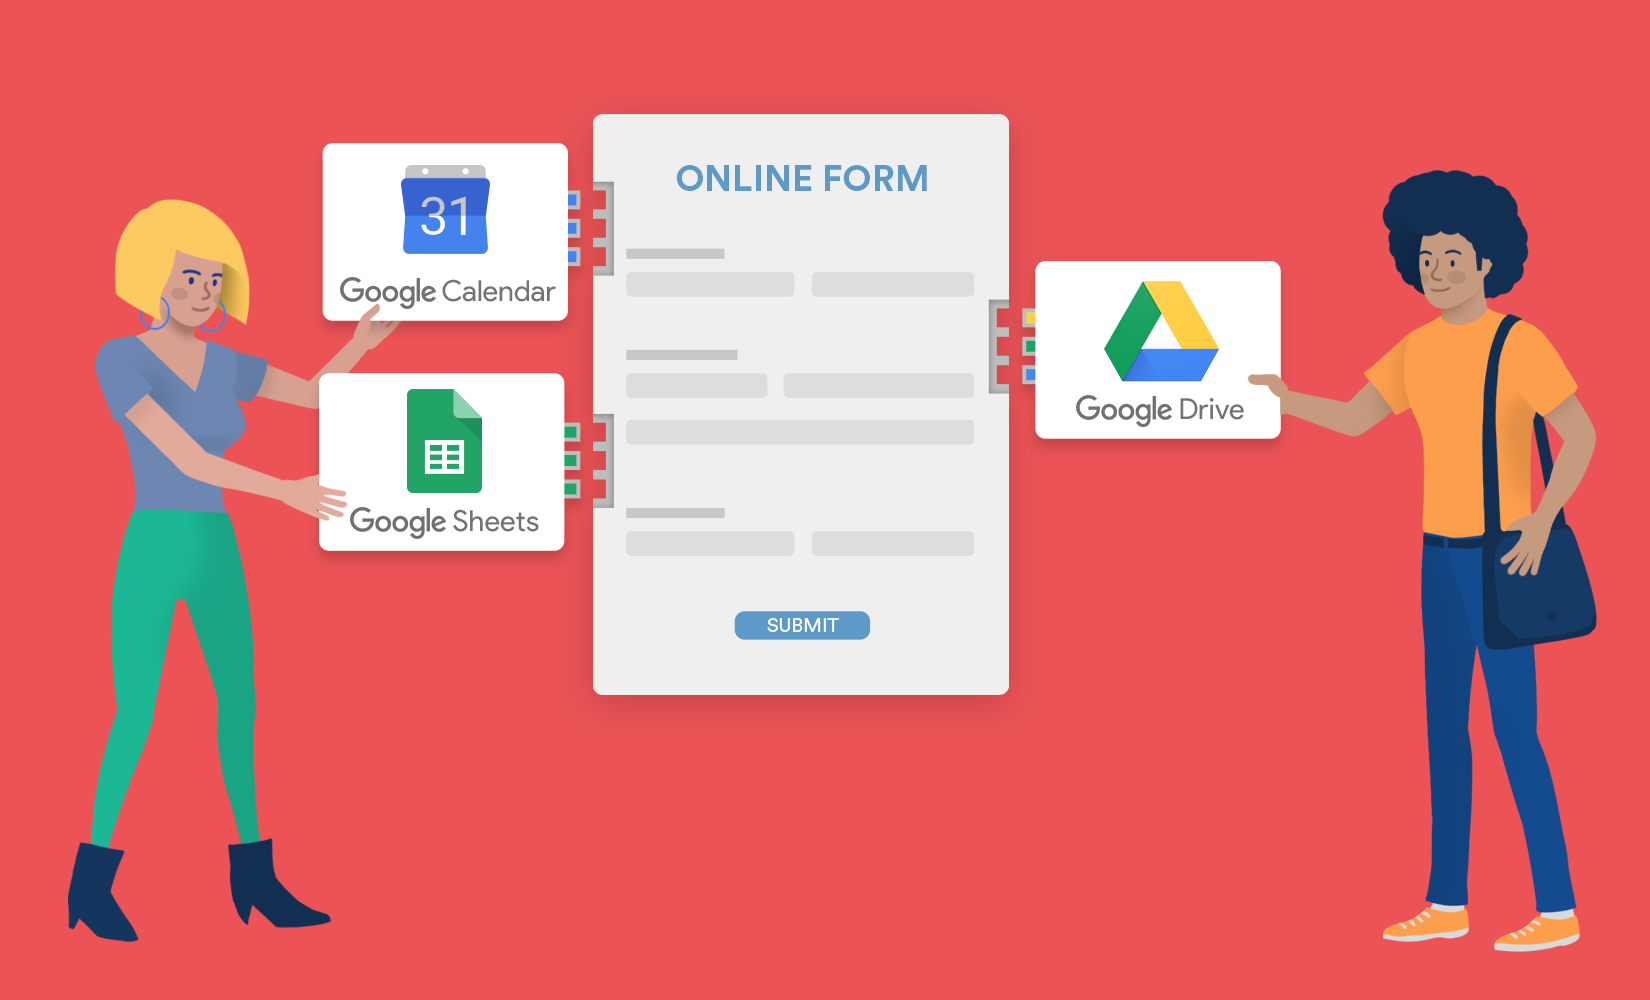 How to make the most of Google integrations in your forms